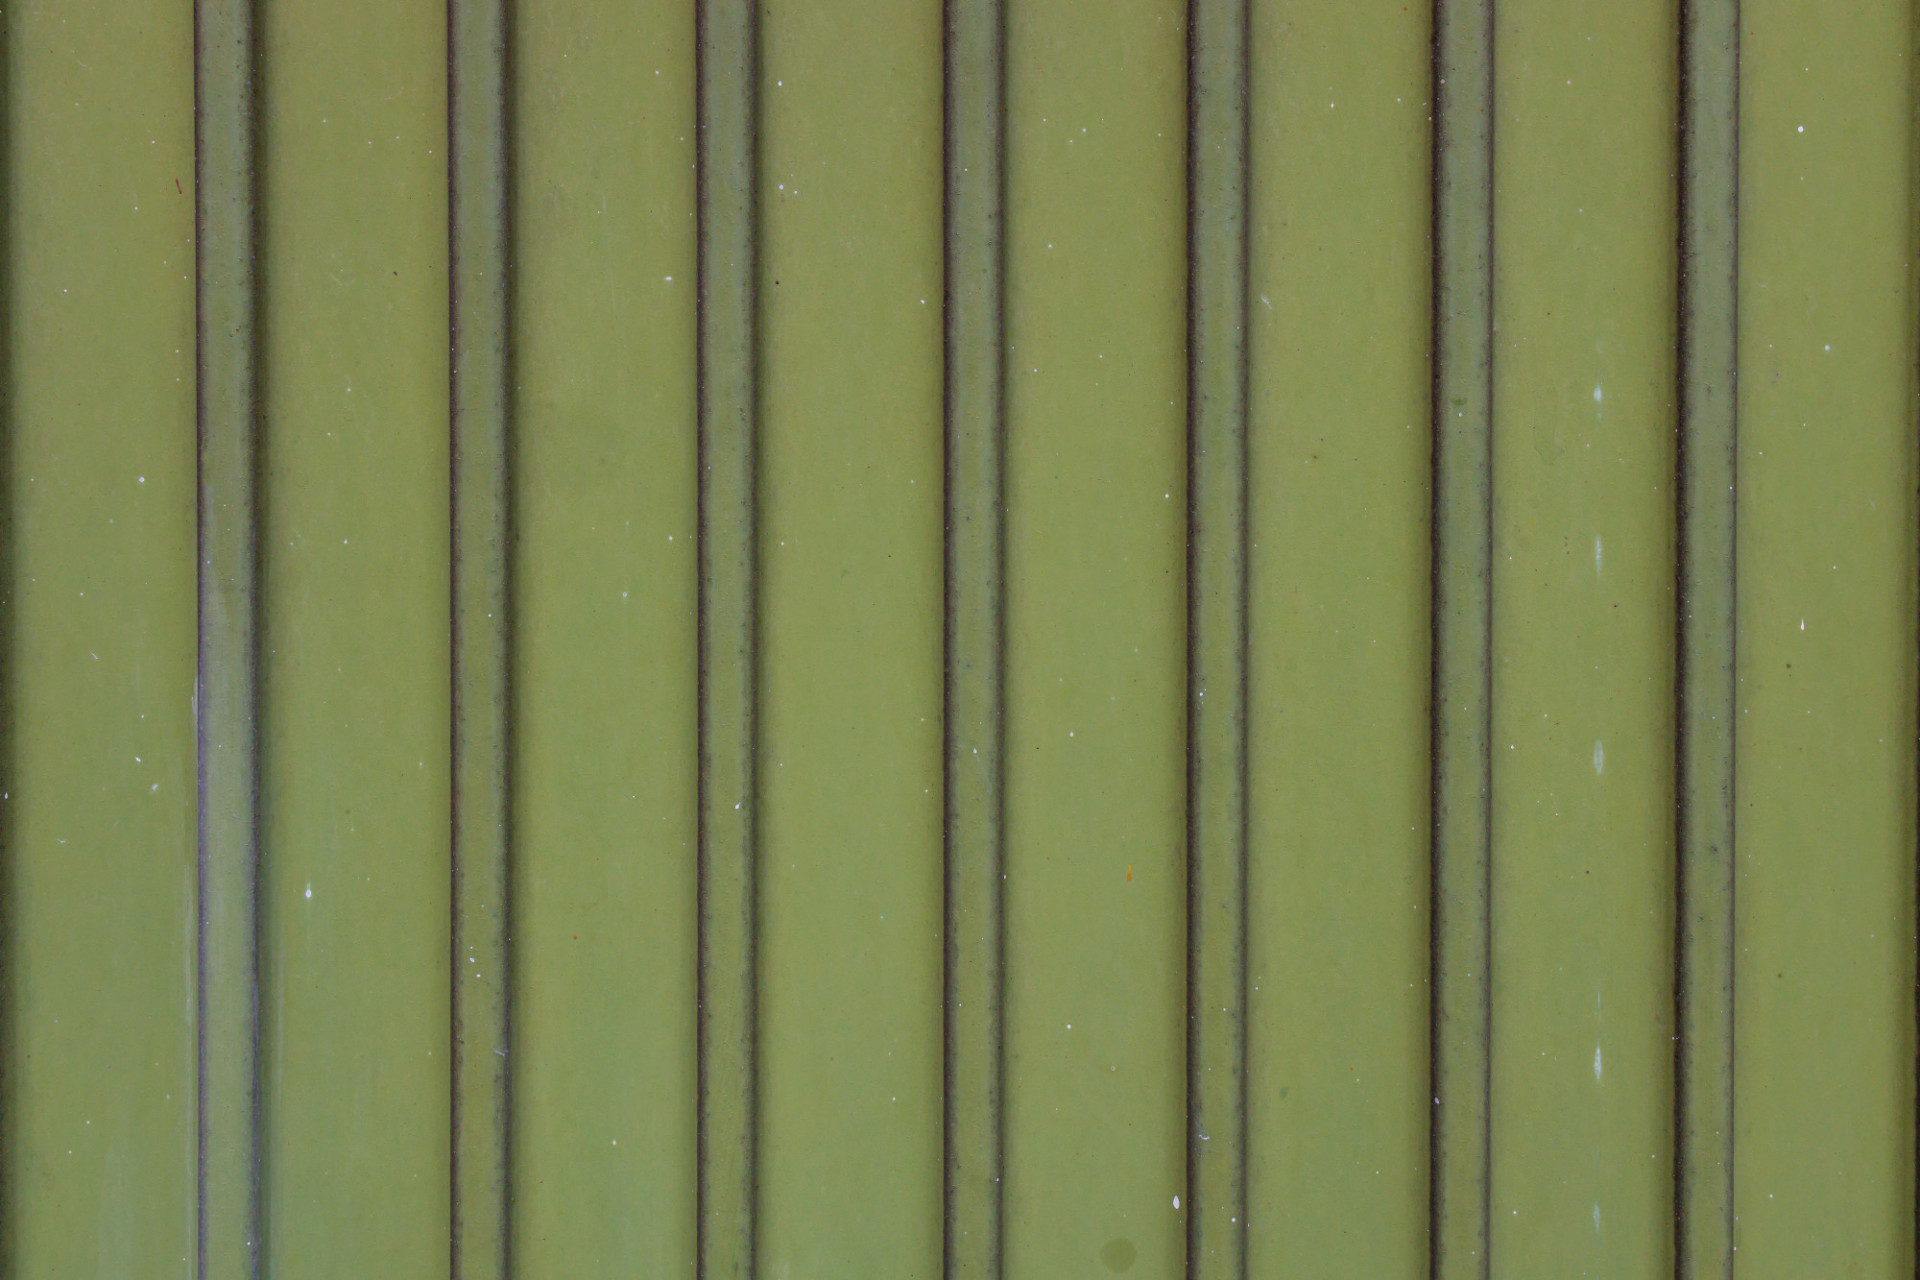 Green Container Metal Texture